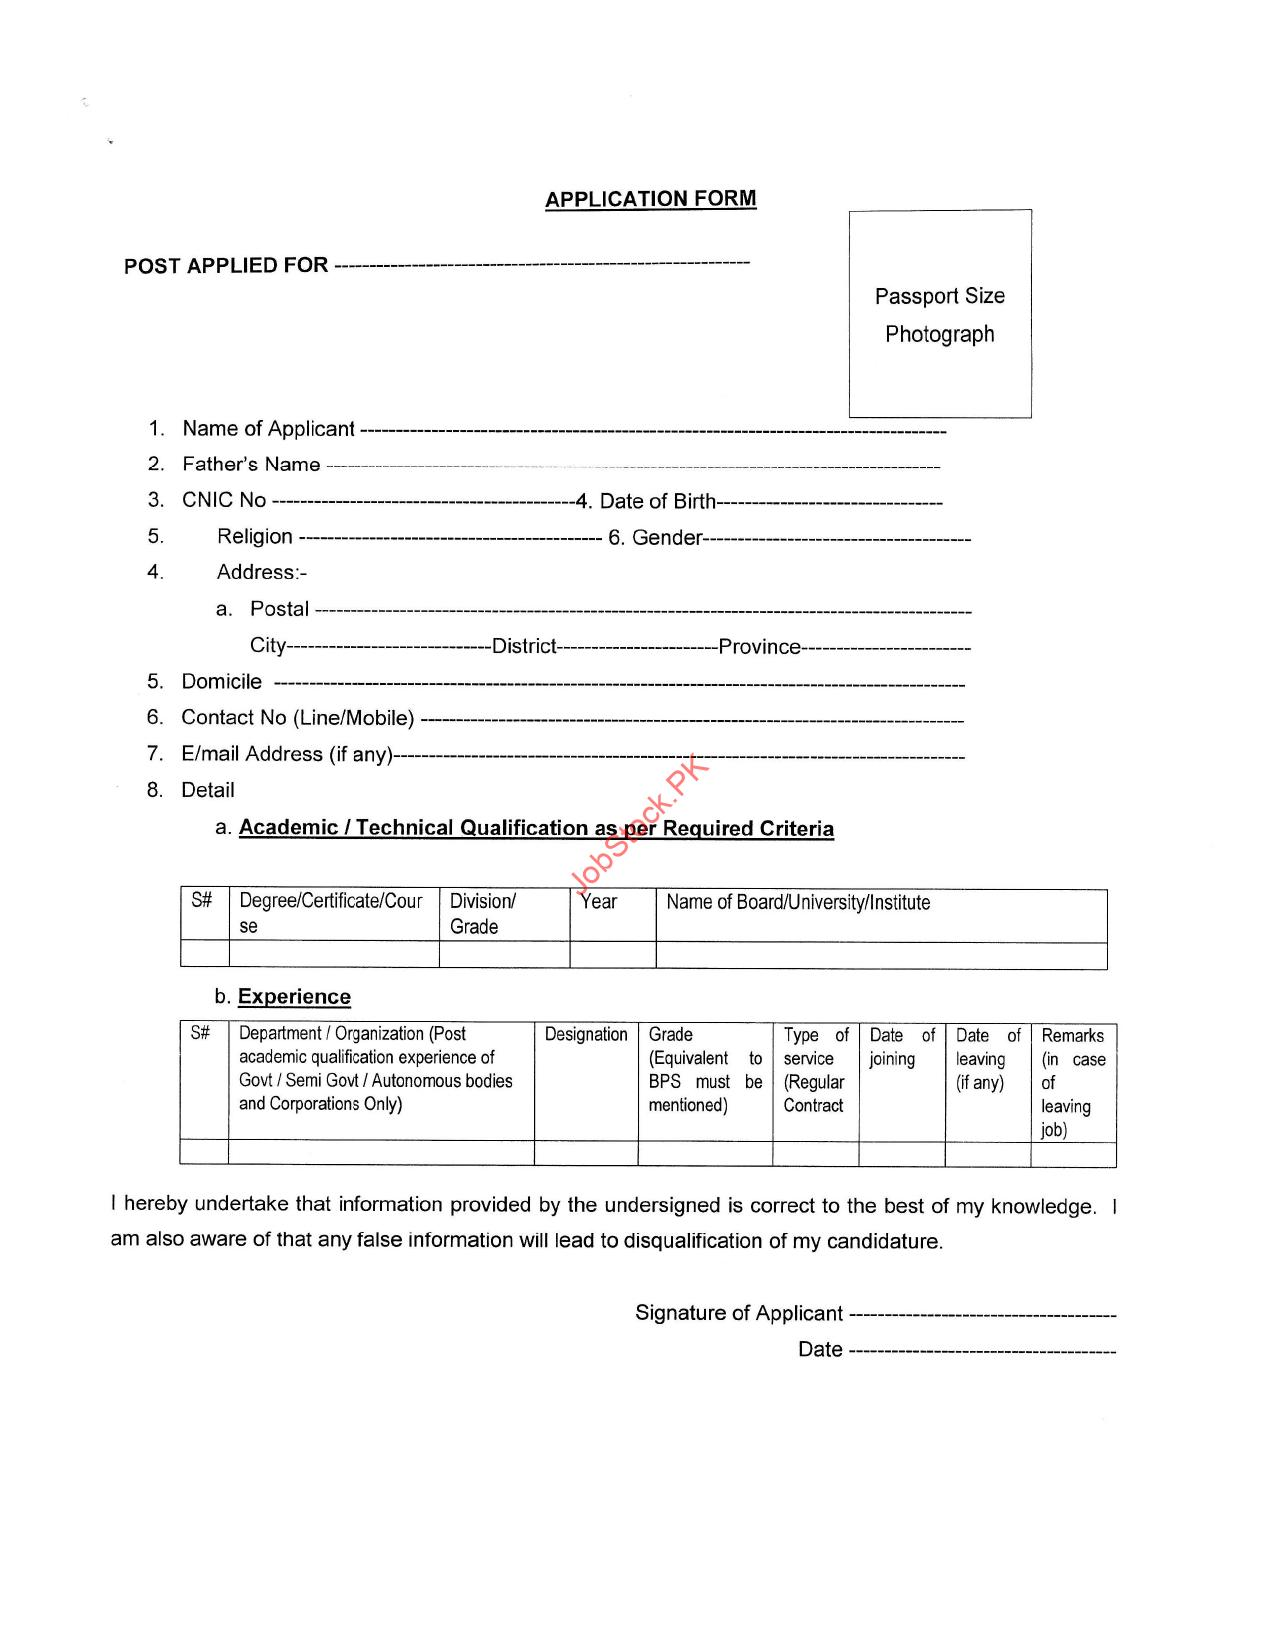 Nab Karachi Jobs 2021 Application Form